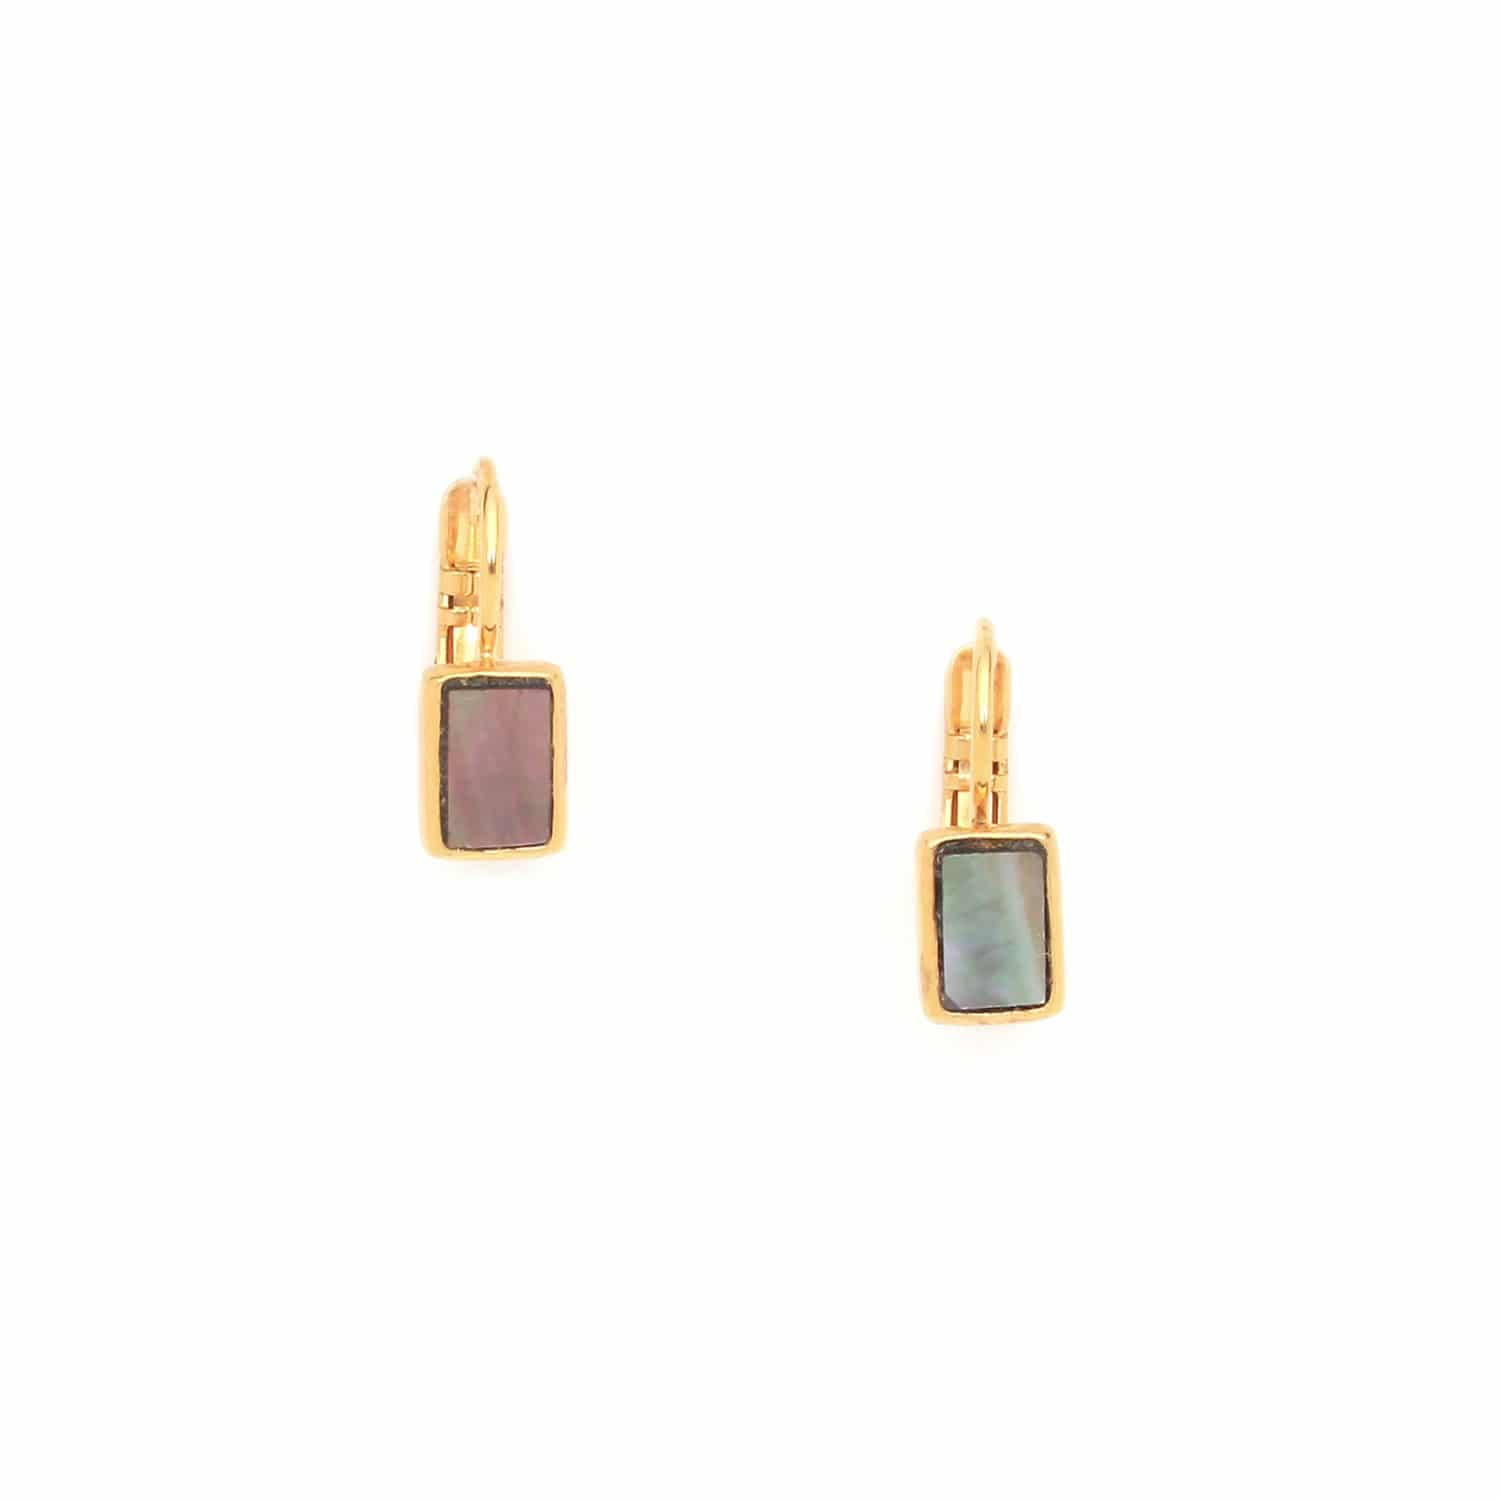 LE SQUARE mini earrings